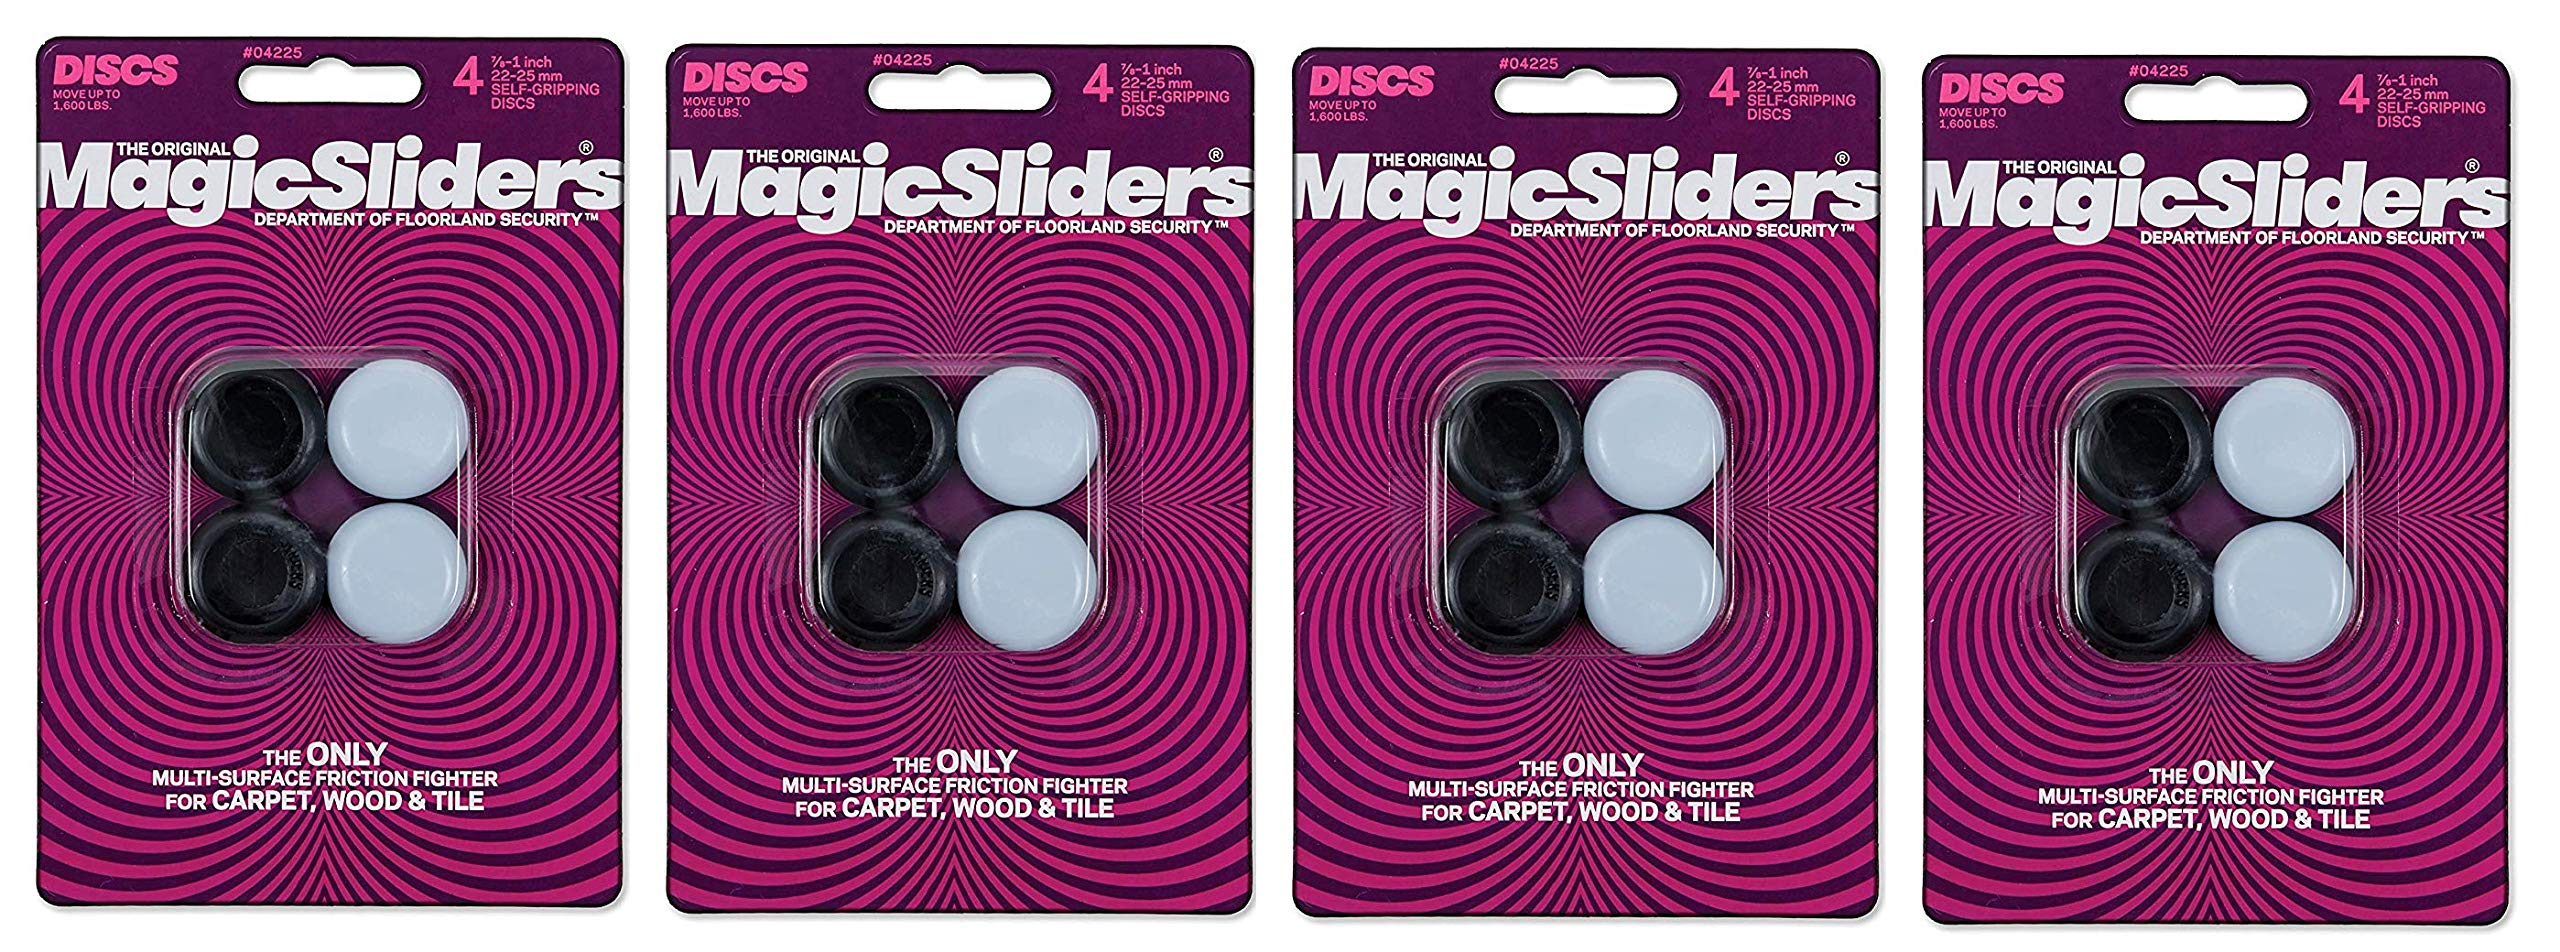 Magic Sliders L P 4225 4 Pack 7/8''-1'' RND Slider (Fоur Paсk)